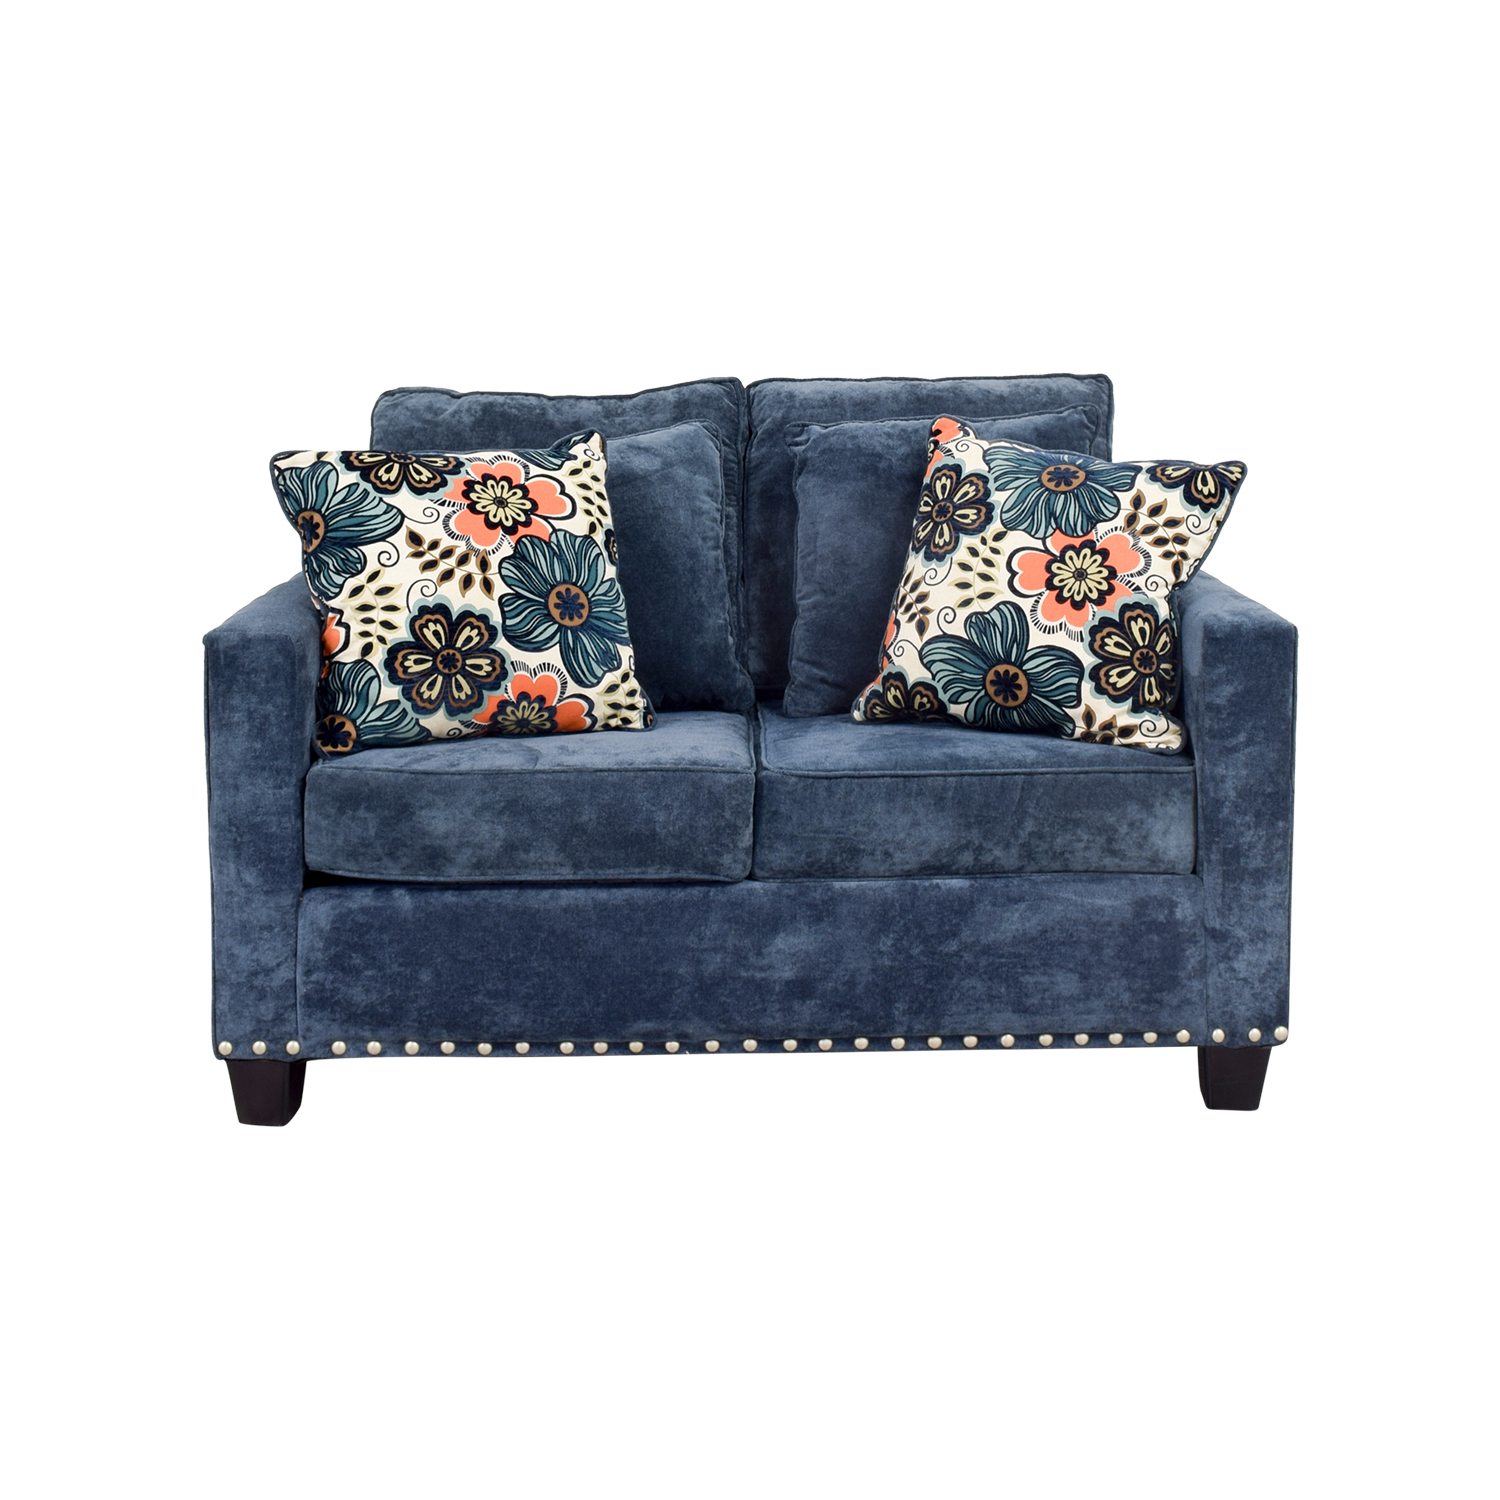 Groovy 72 Off Bobs Discount Furniture Bobs Furniture Loveseat Sofas Gamerscity Chair Design For Home Gamerscityorg